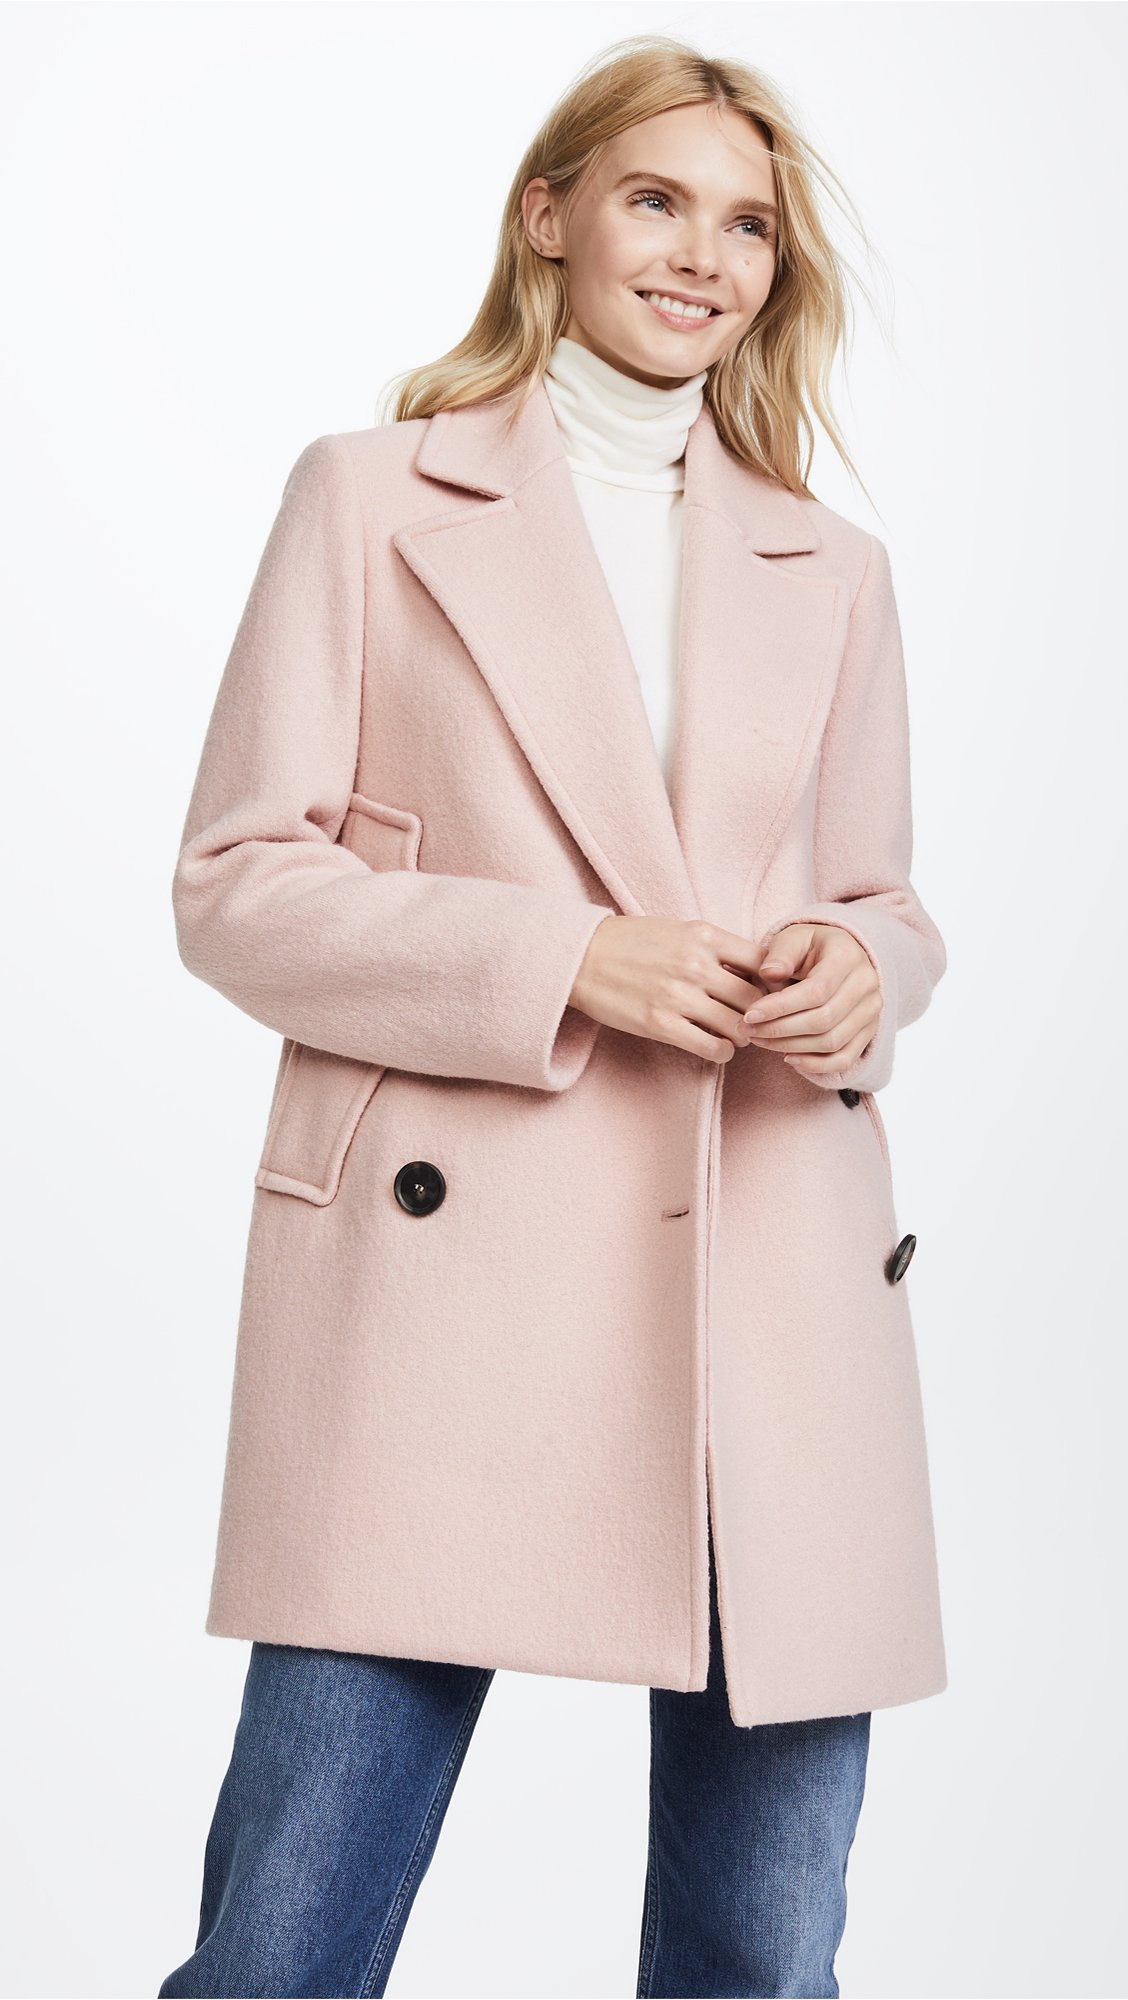 Theory Women's Cape Coat, Chalk Pink, S by Theory (Image #2)